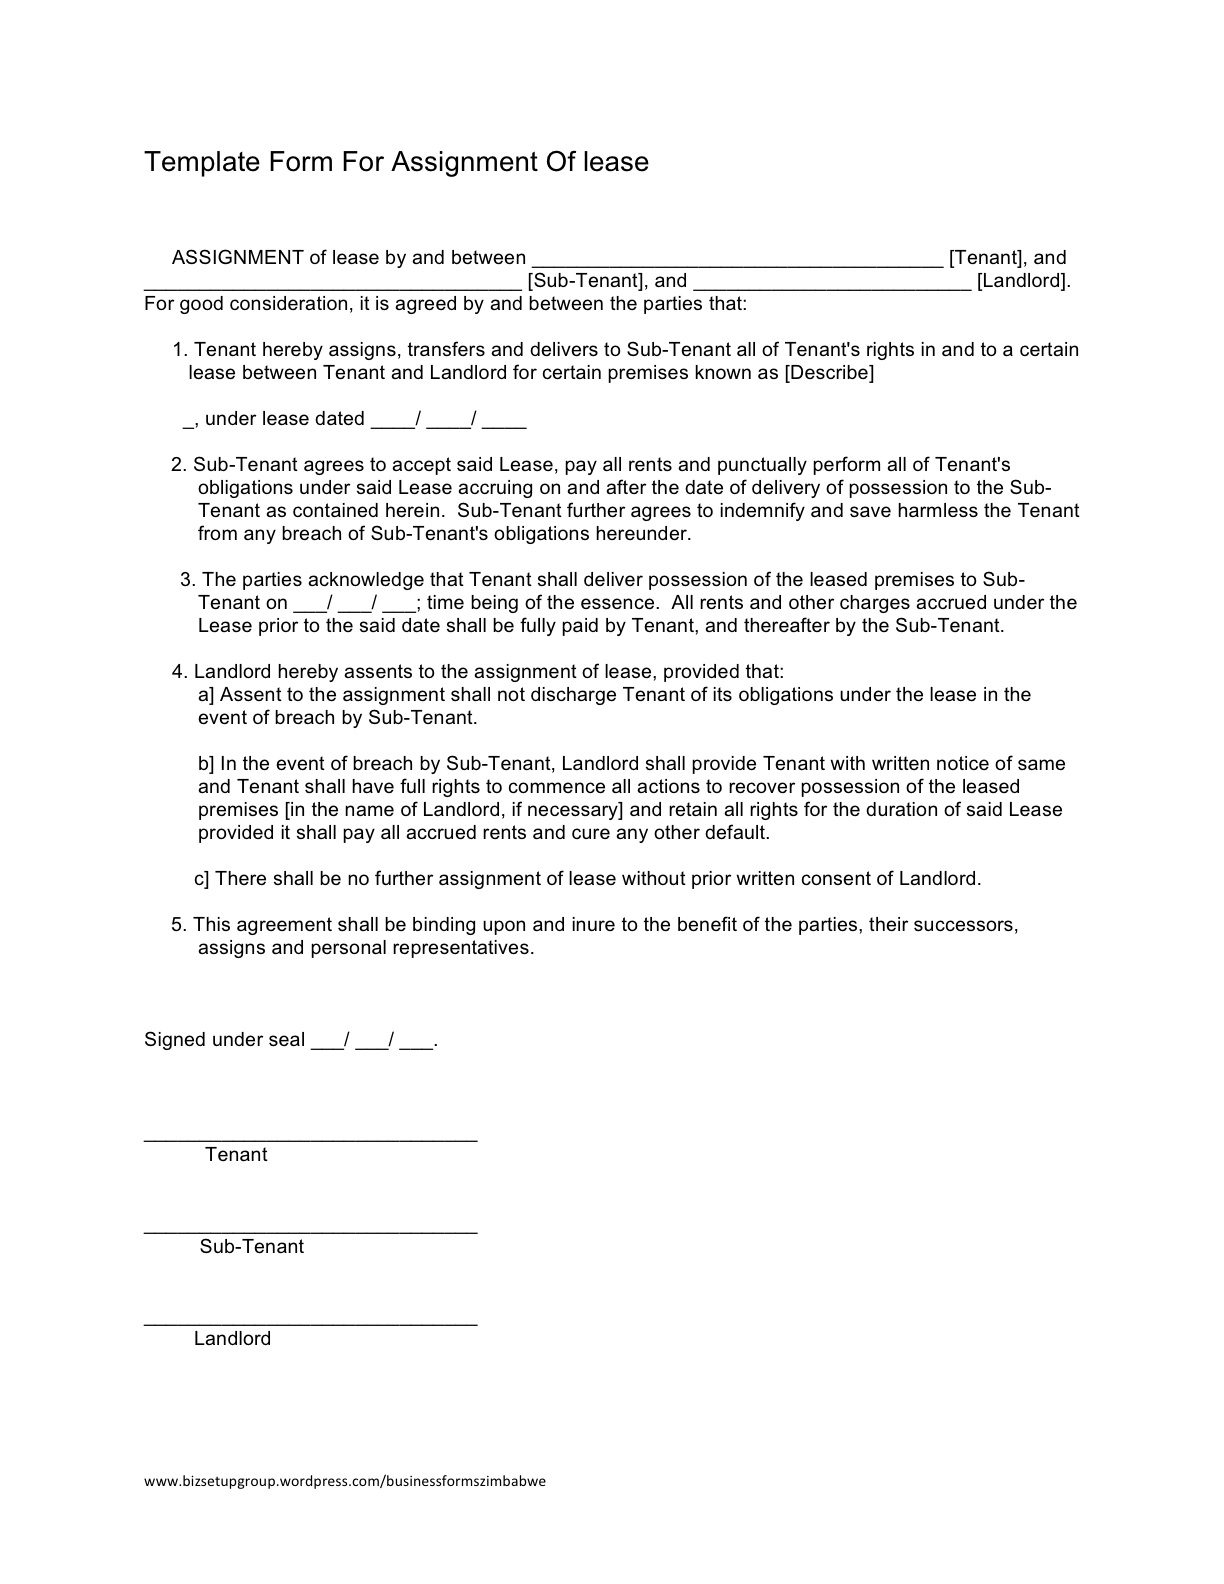 Assignment Of Rights Form Erkalnathandedecker